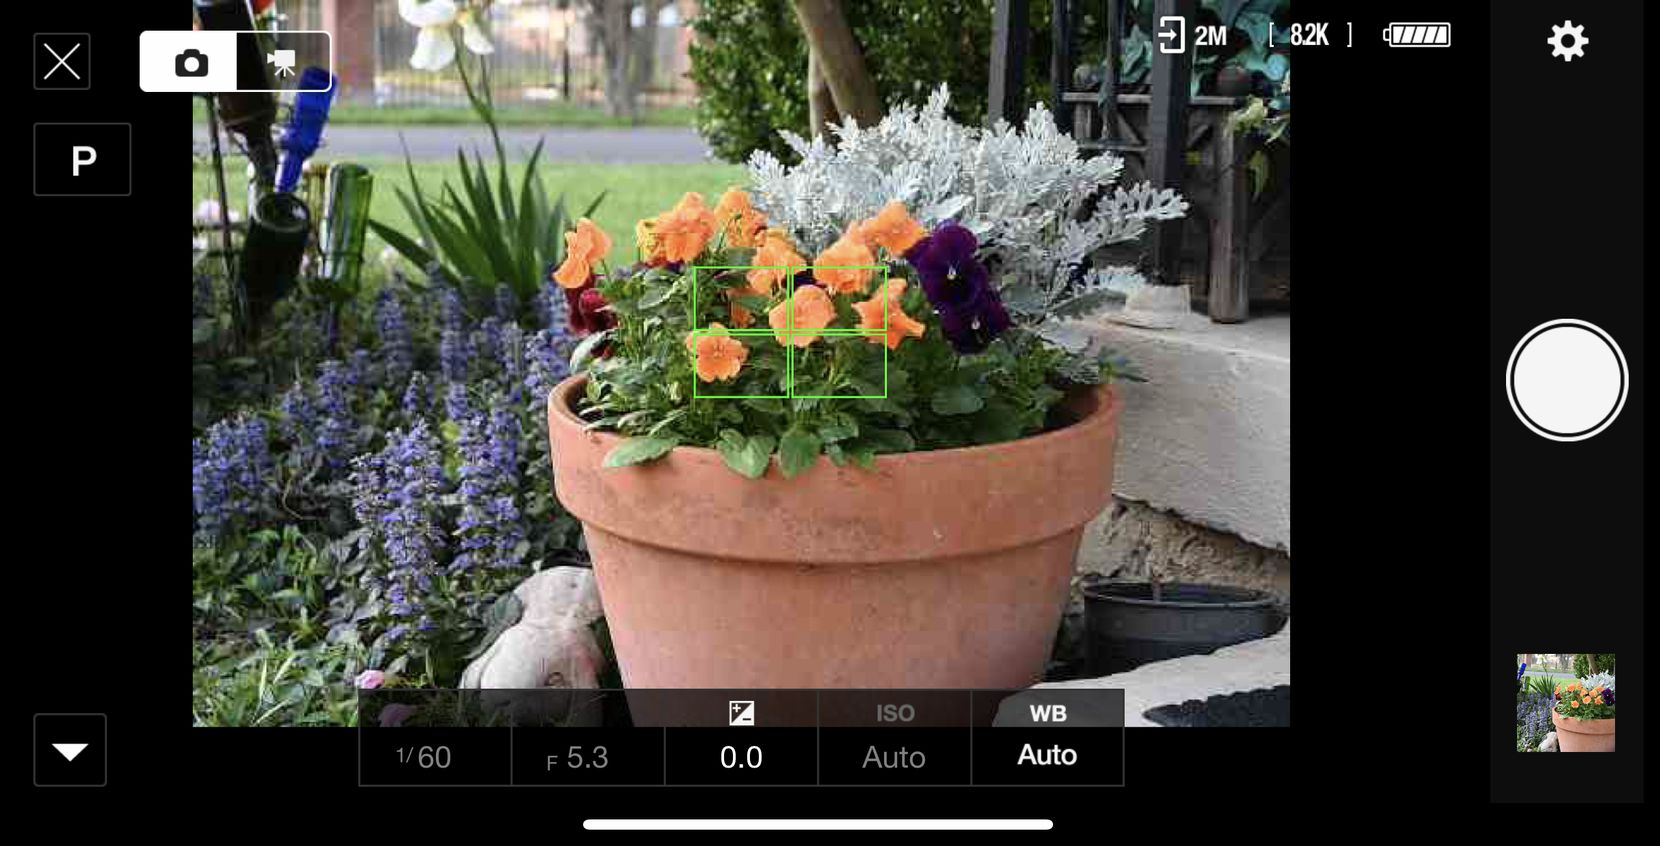 The Nikon SnapBridge app lets you shoot and change settings remotely using your phone.